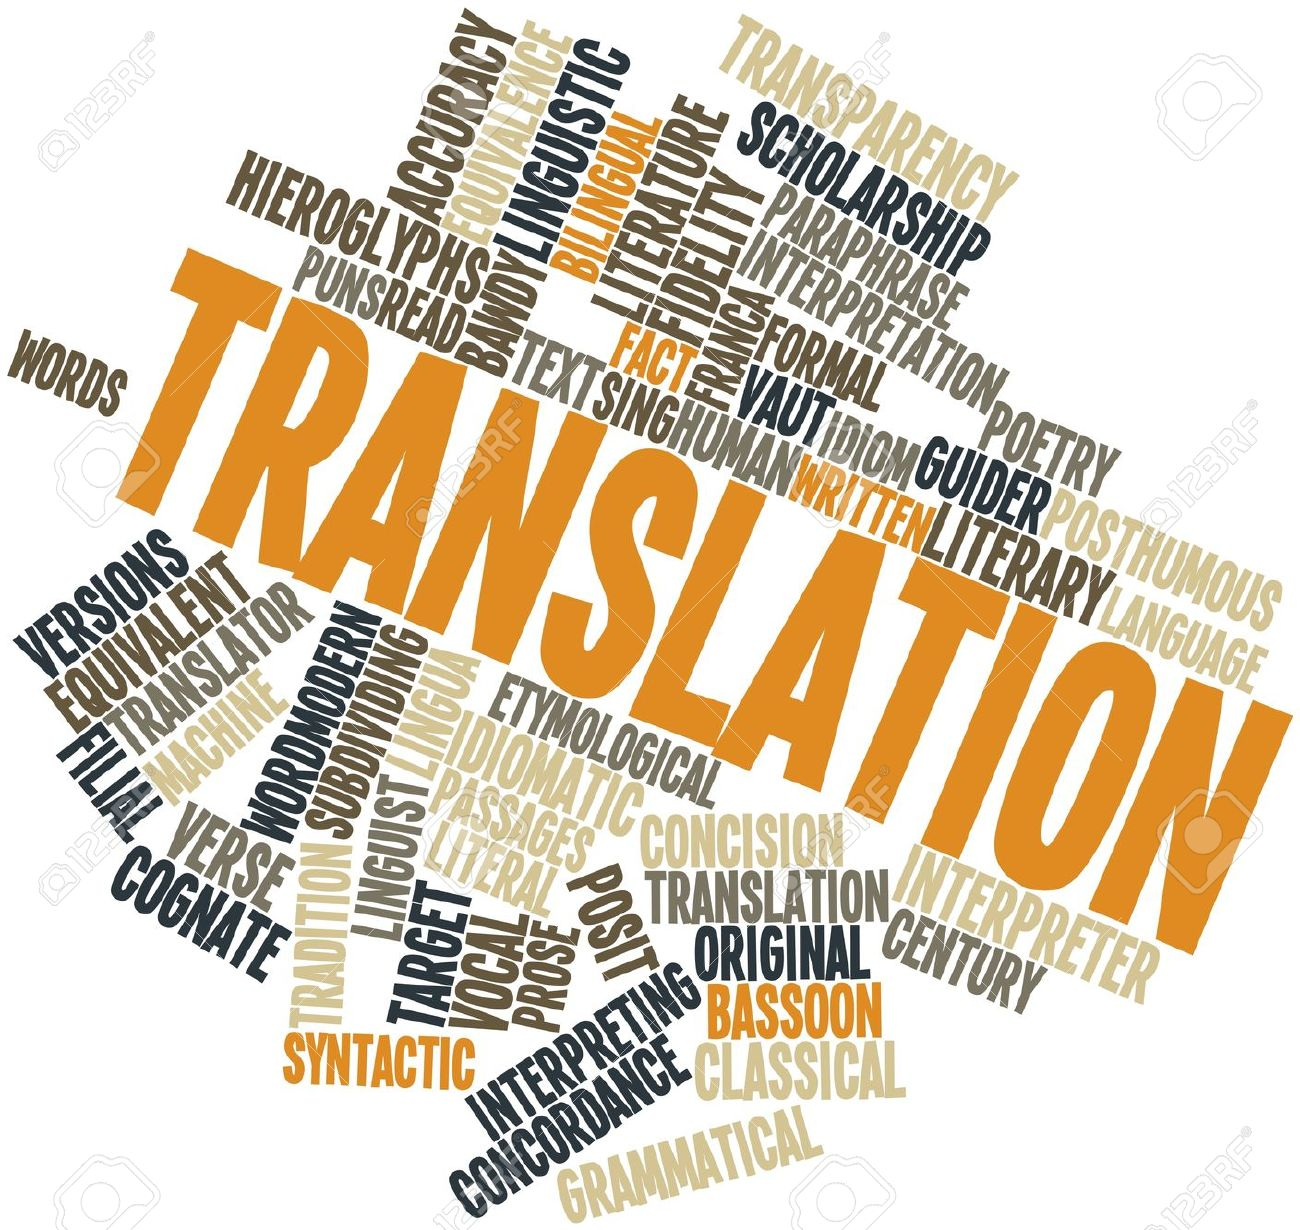 Translate Words And Articles From English To Spanish